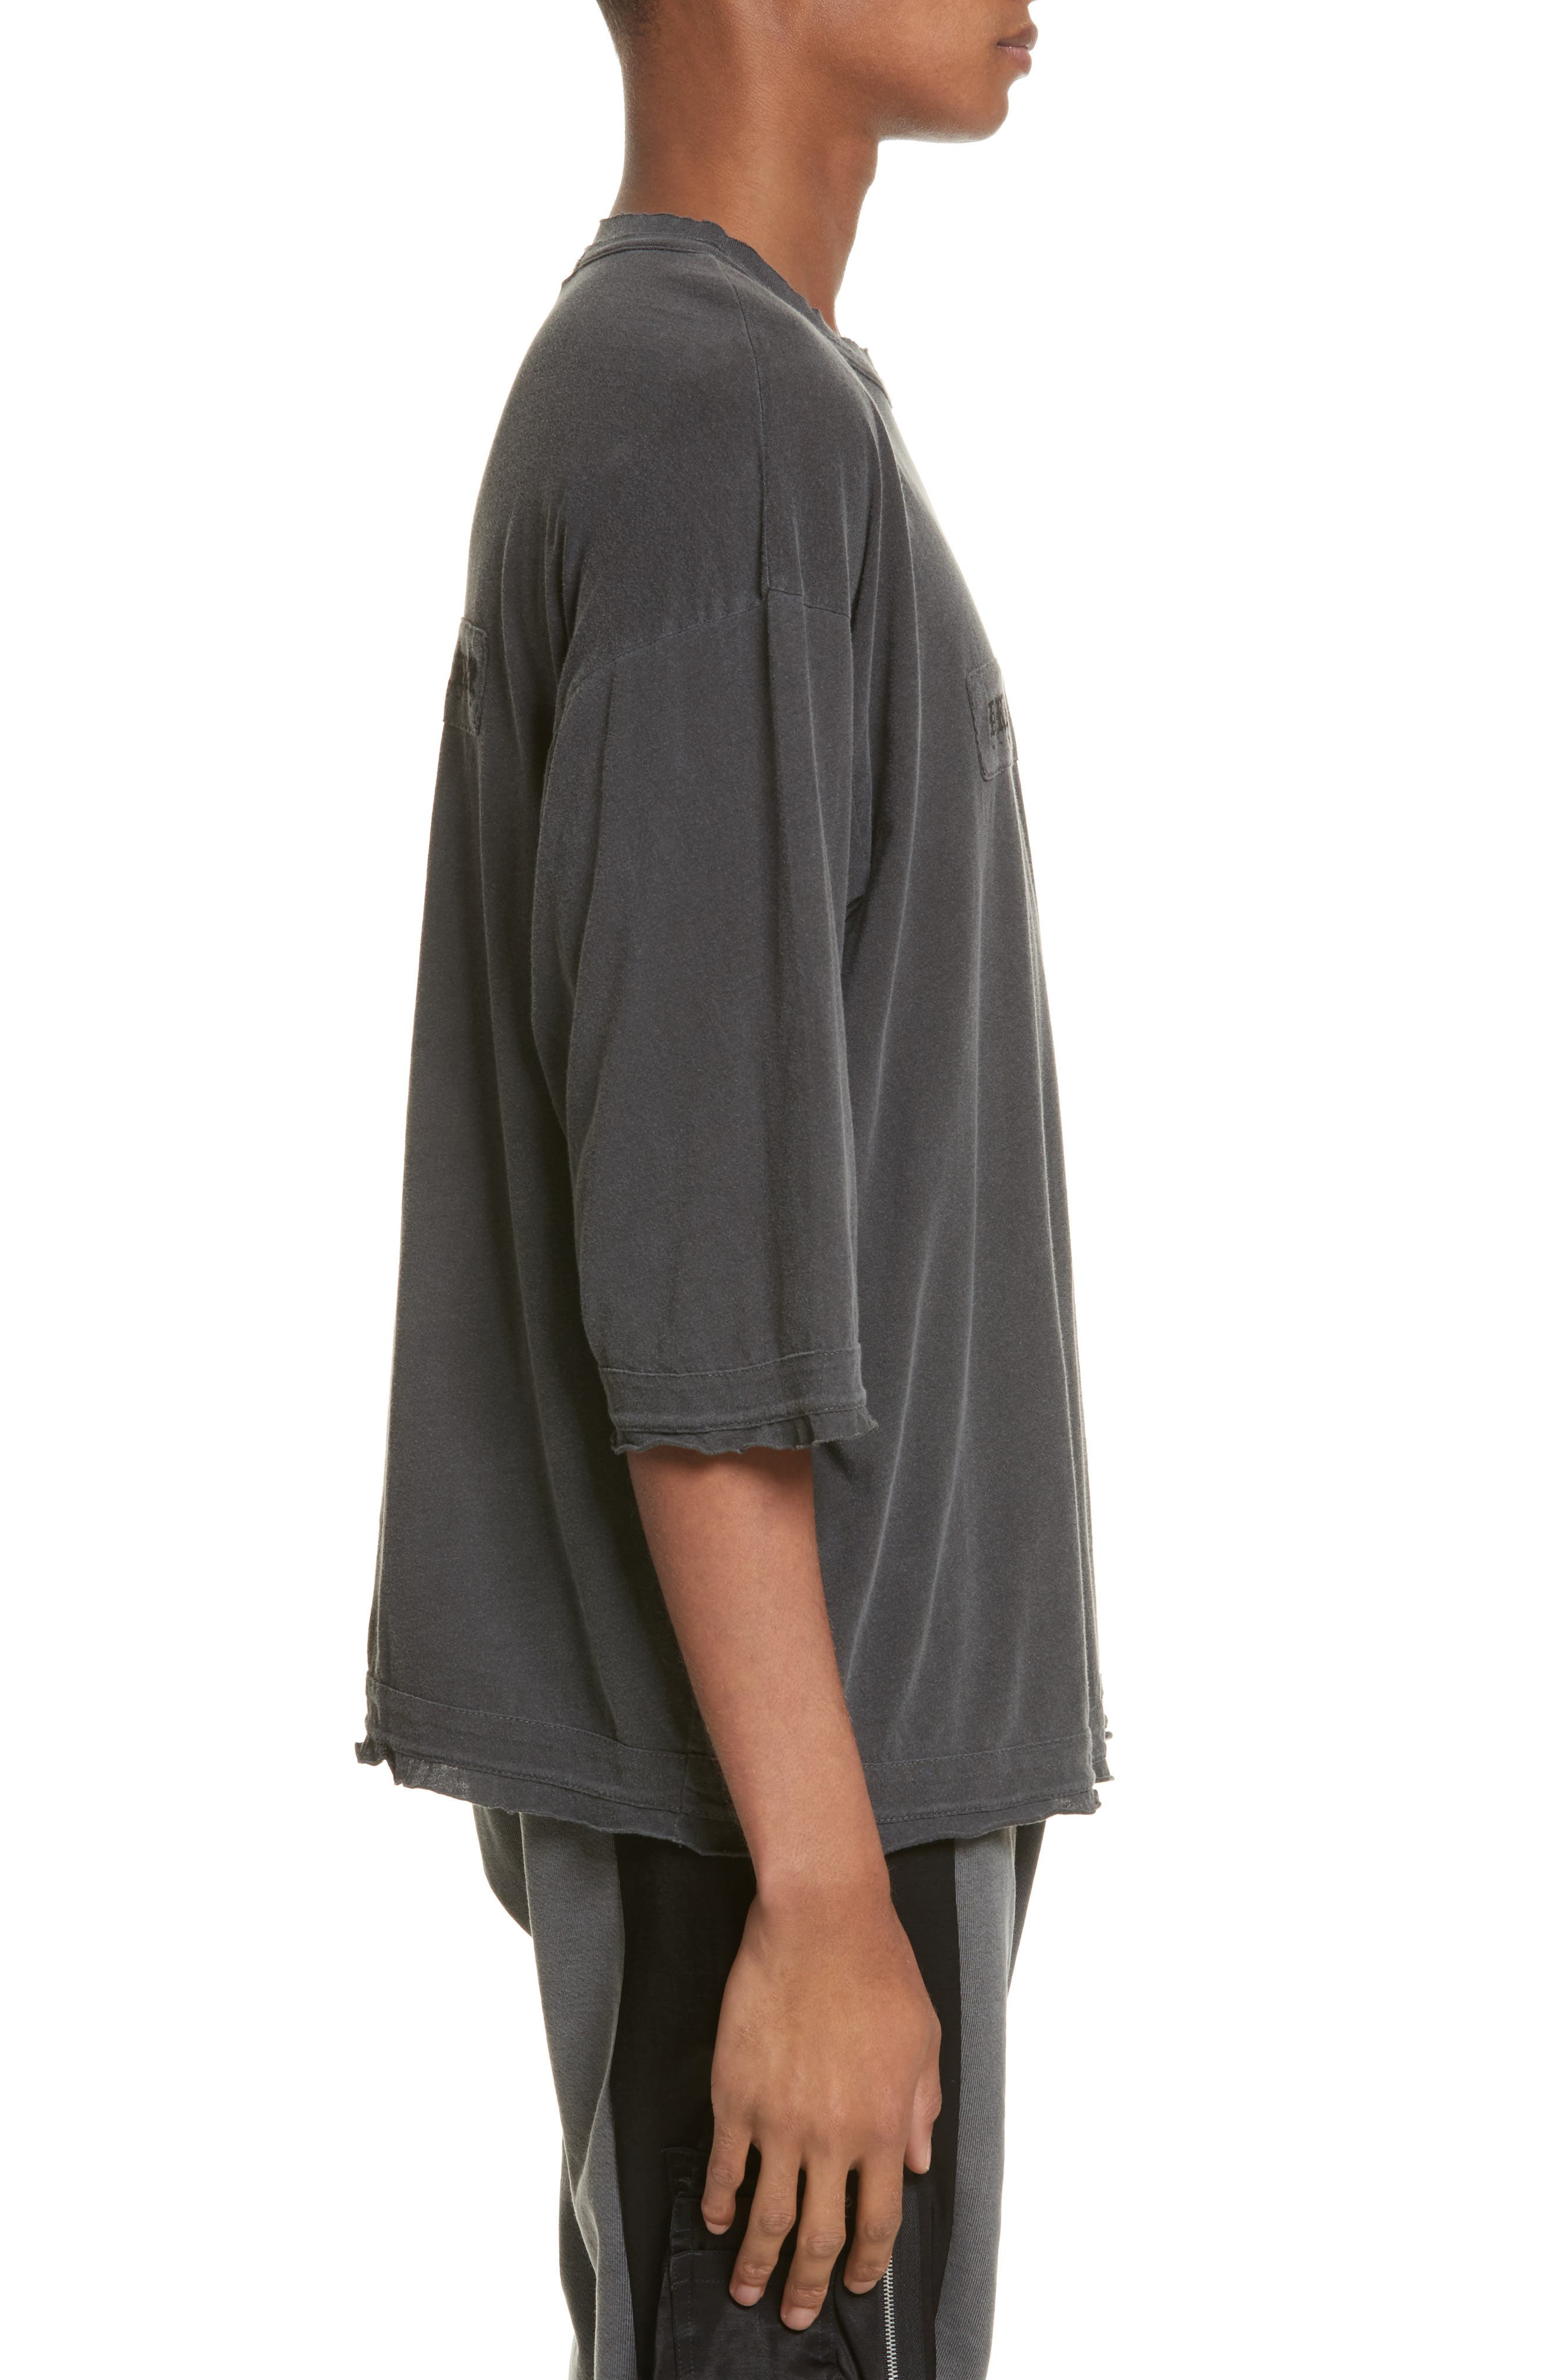 Eshu Oversize T-Shirt,                             Alternate thumbnail 3, color,                             Black Pigment